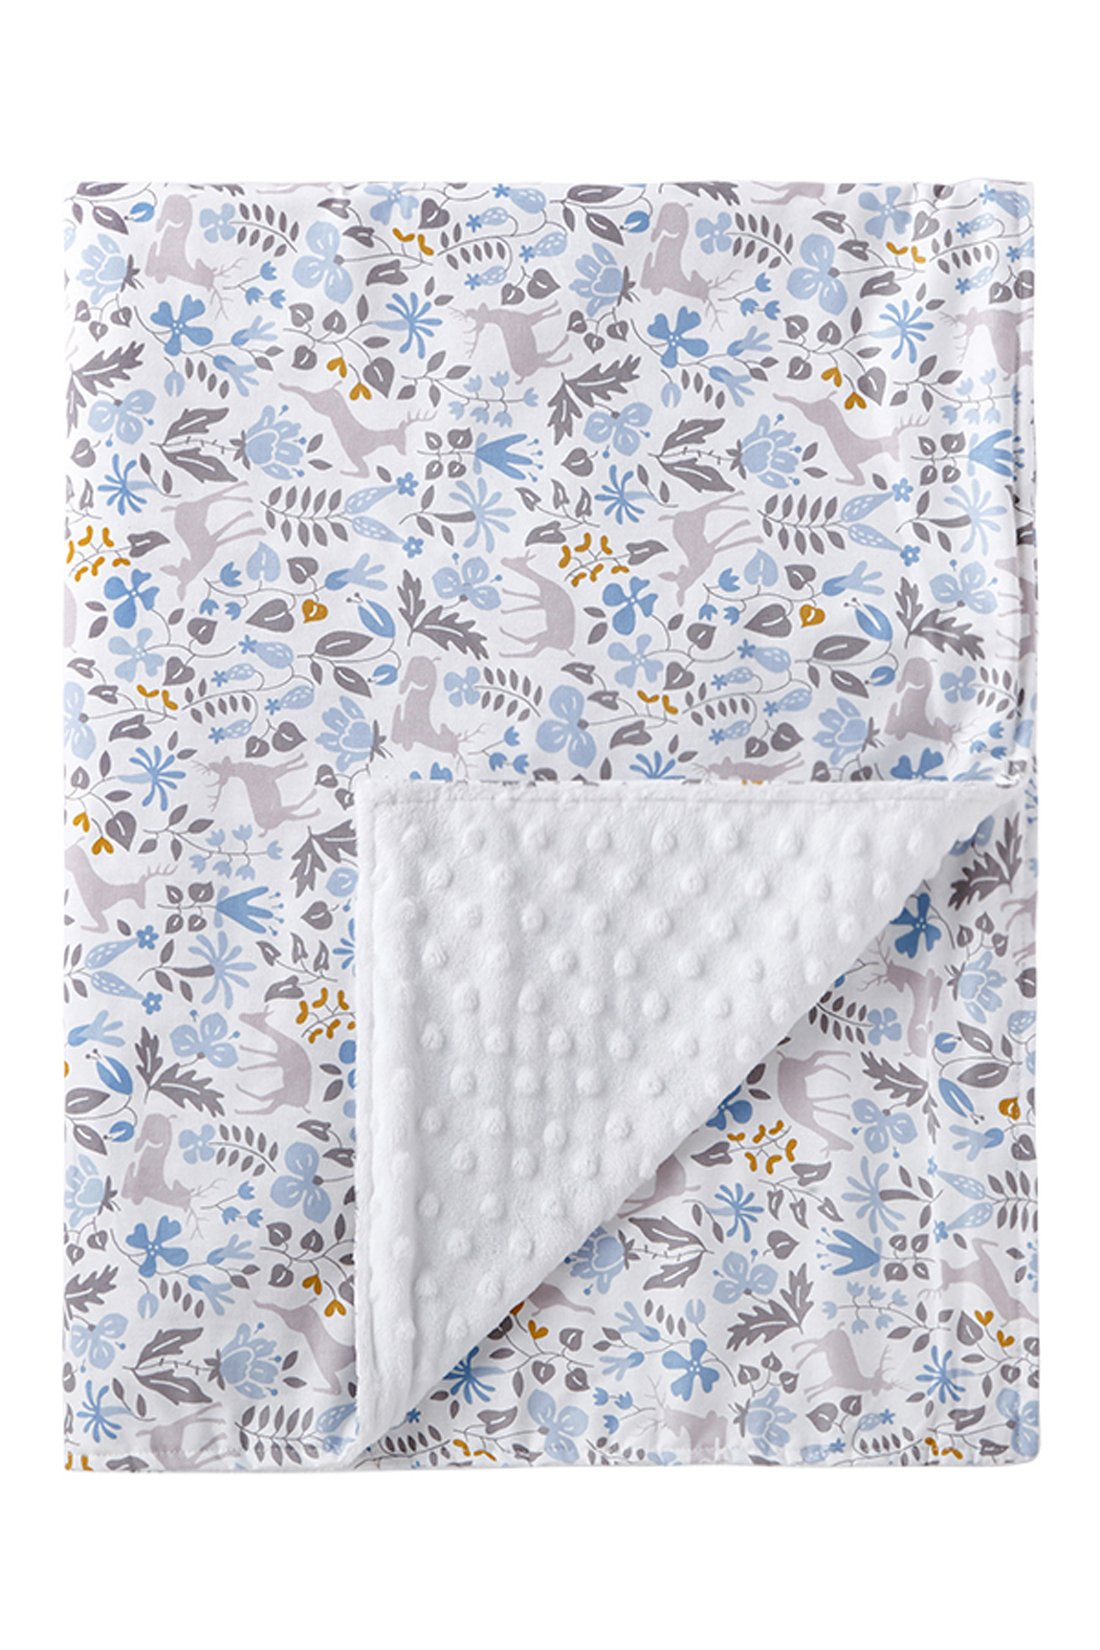 Super Soft Baby Printed Organic Cotton Mink Nursery Blanket with Dotted Plush Velboa Fabric Backing